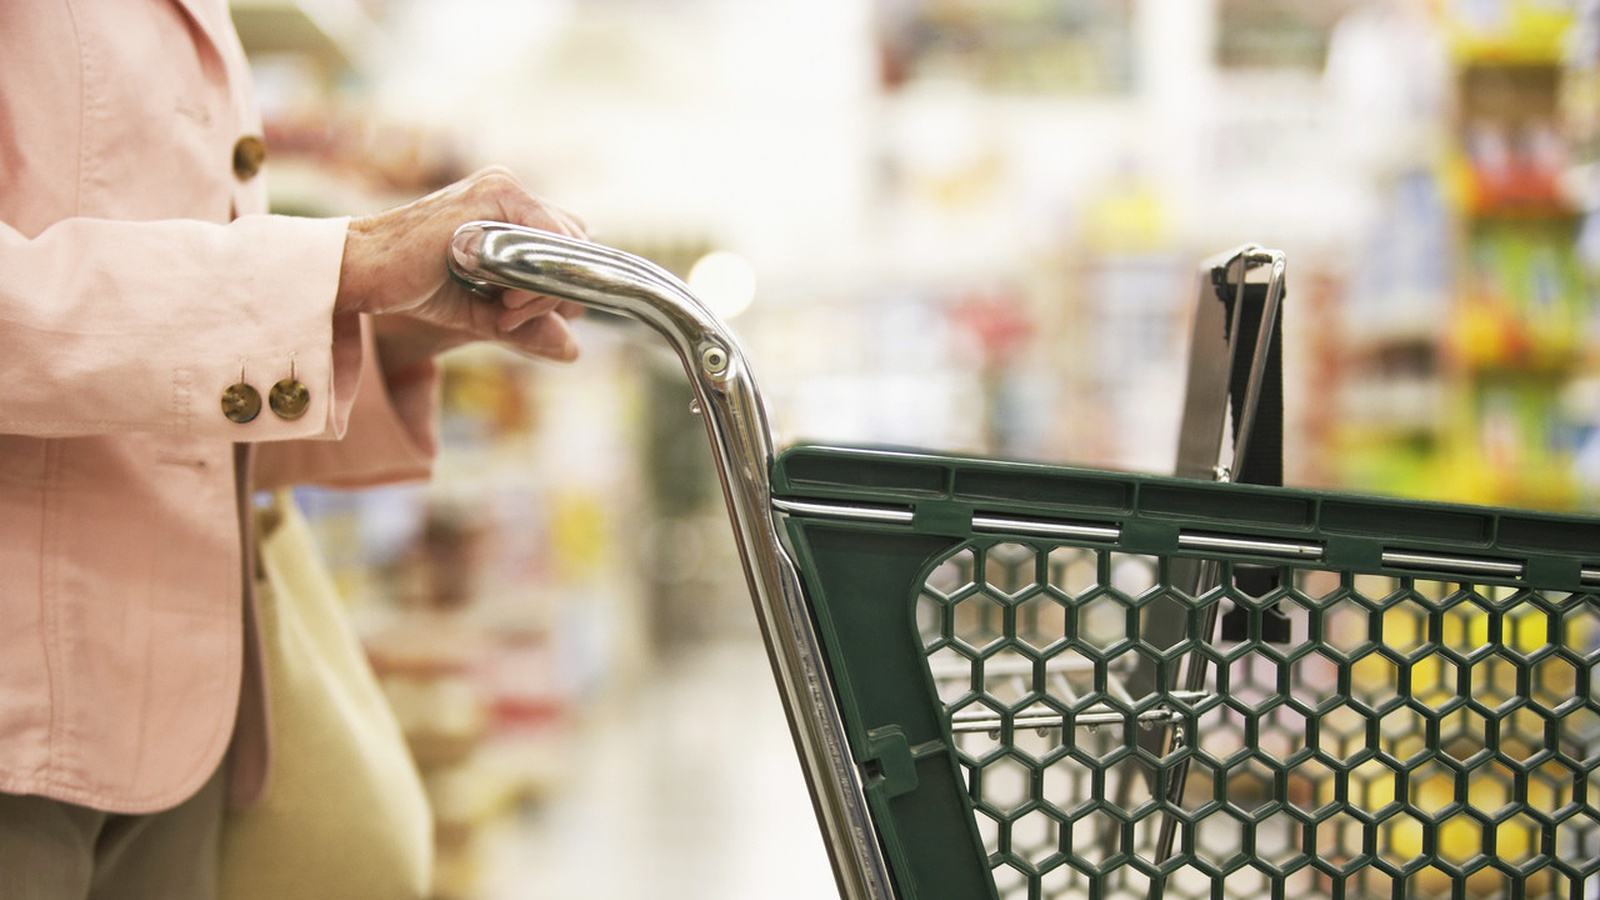 Top 7 Supermarket Foods to Avoid